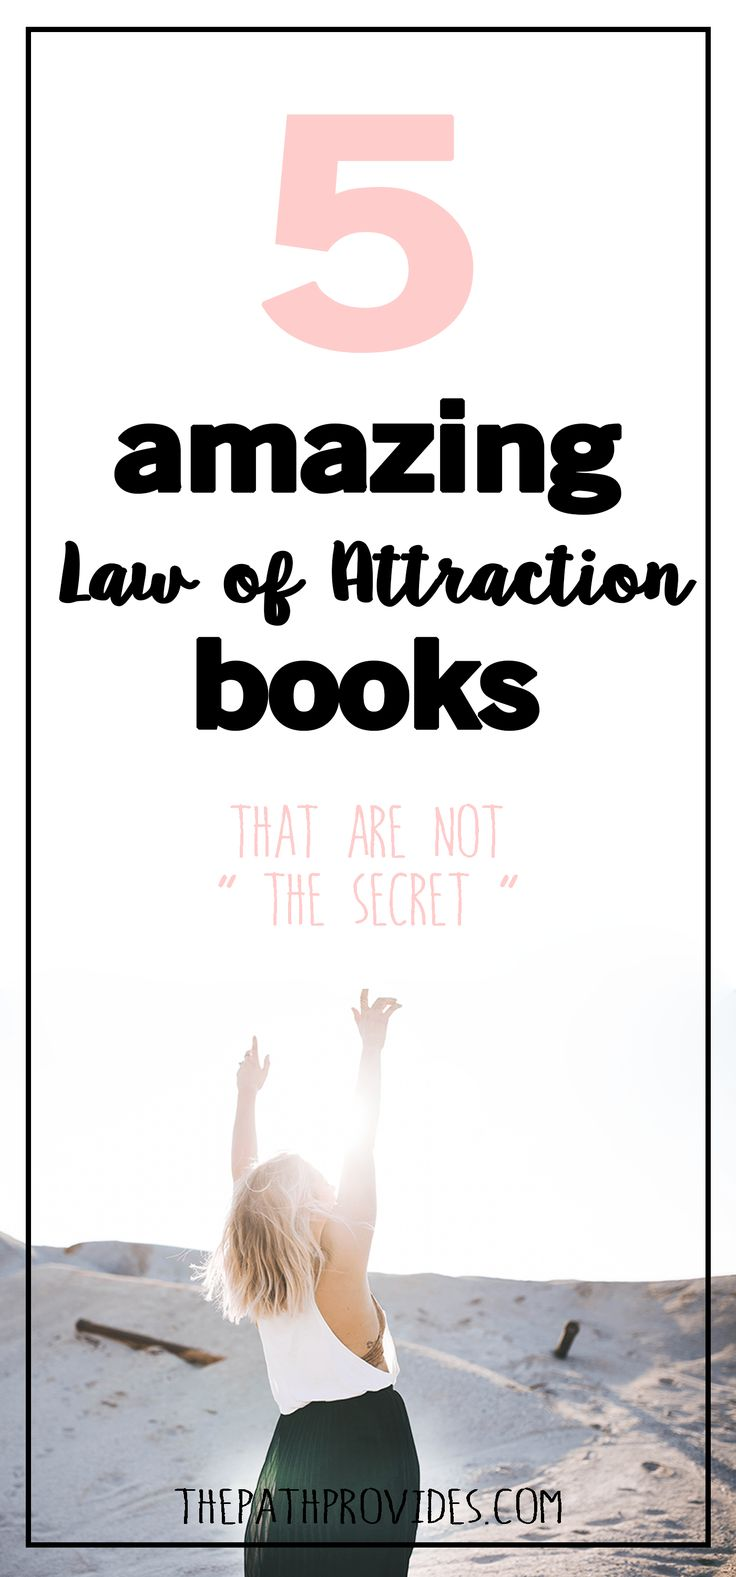 "I have collected here a short but oh-so-sweet list of my favorite books on the Law of Attraction that are not ""The Secret""."